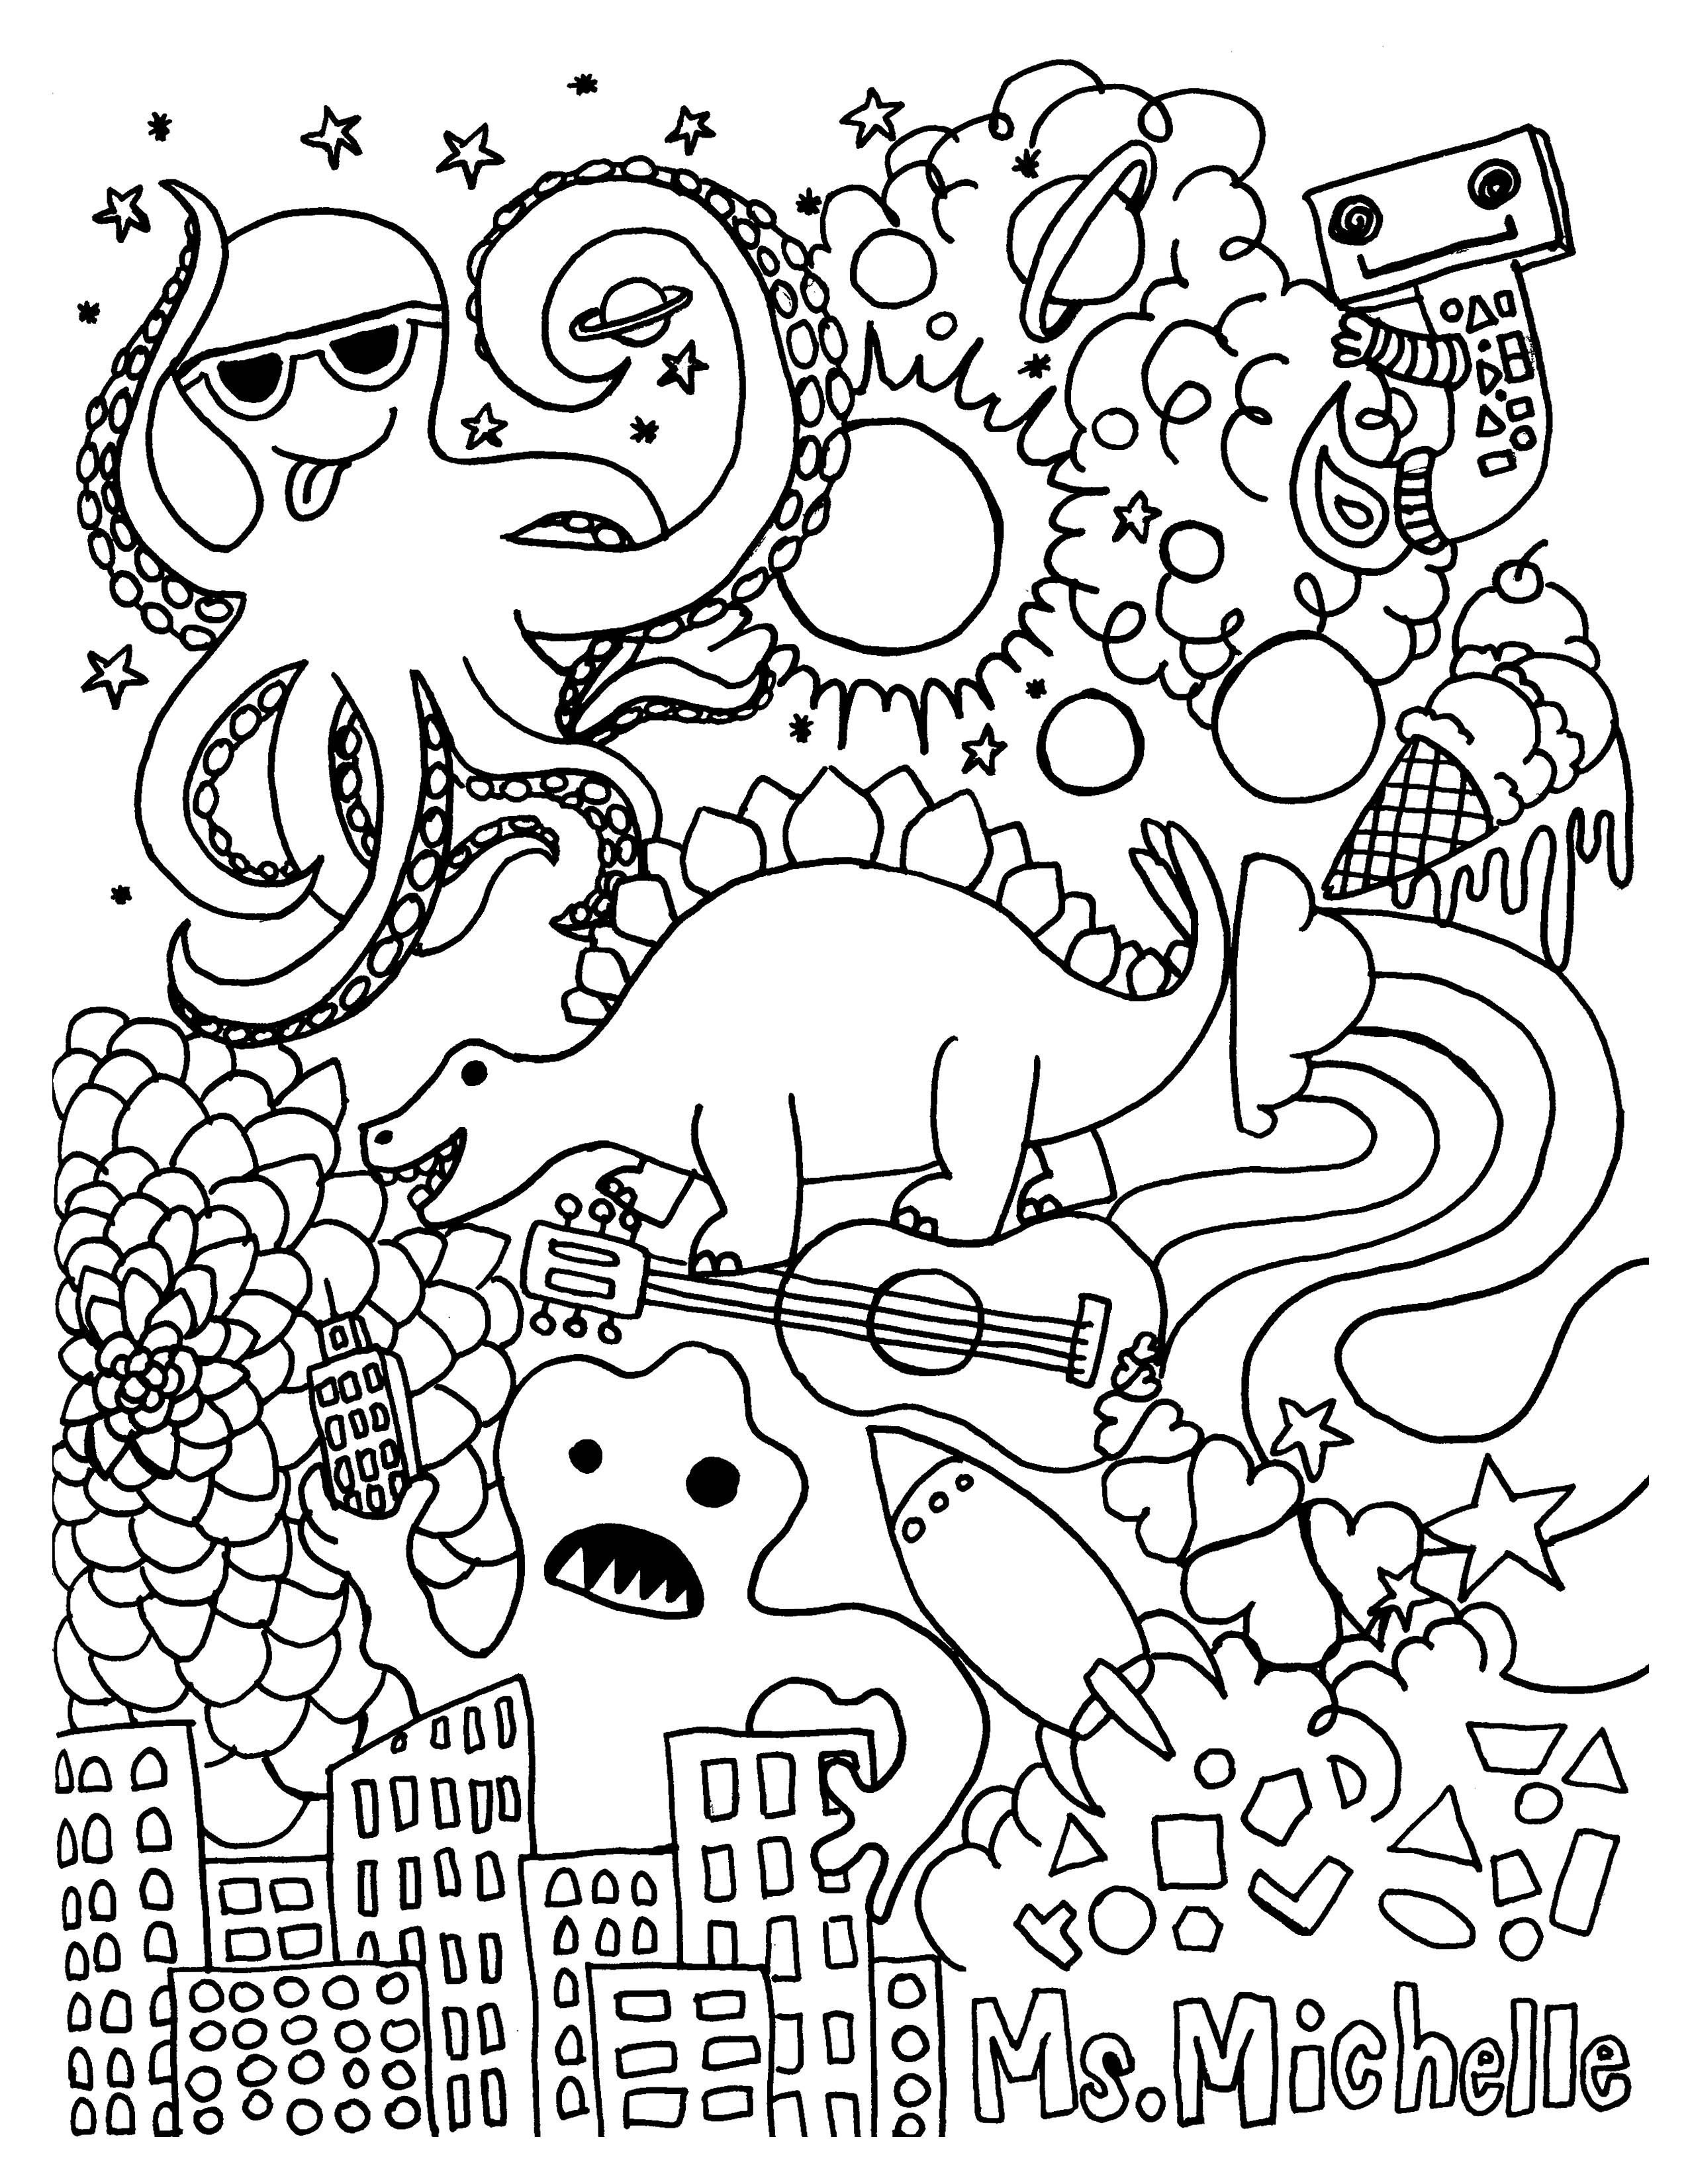 Religious Coloring Pages For Kids 25 Religious Coloring Pages For Kids Collection Coloring Sheets